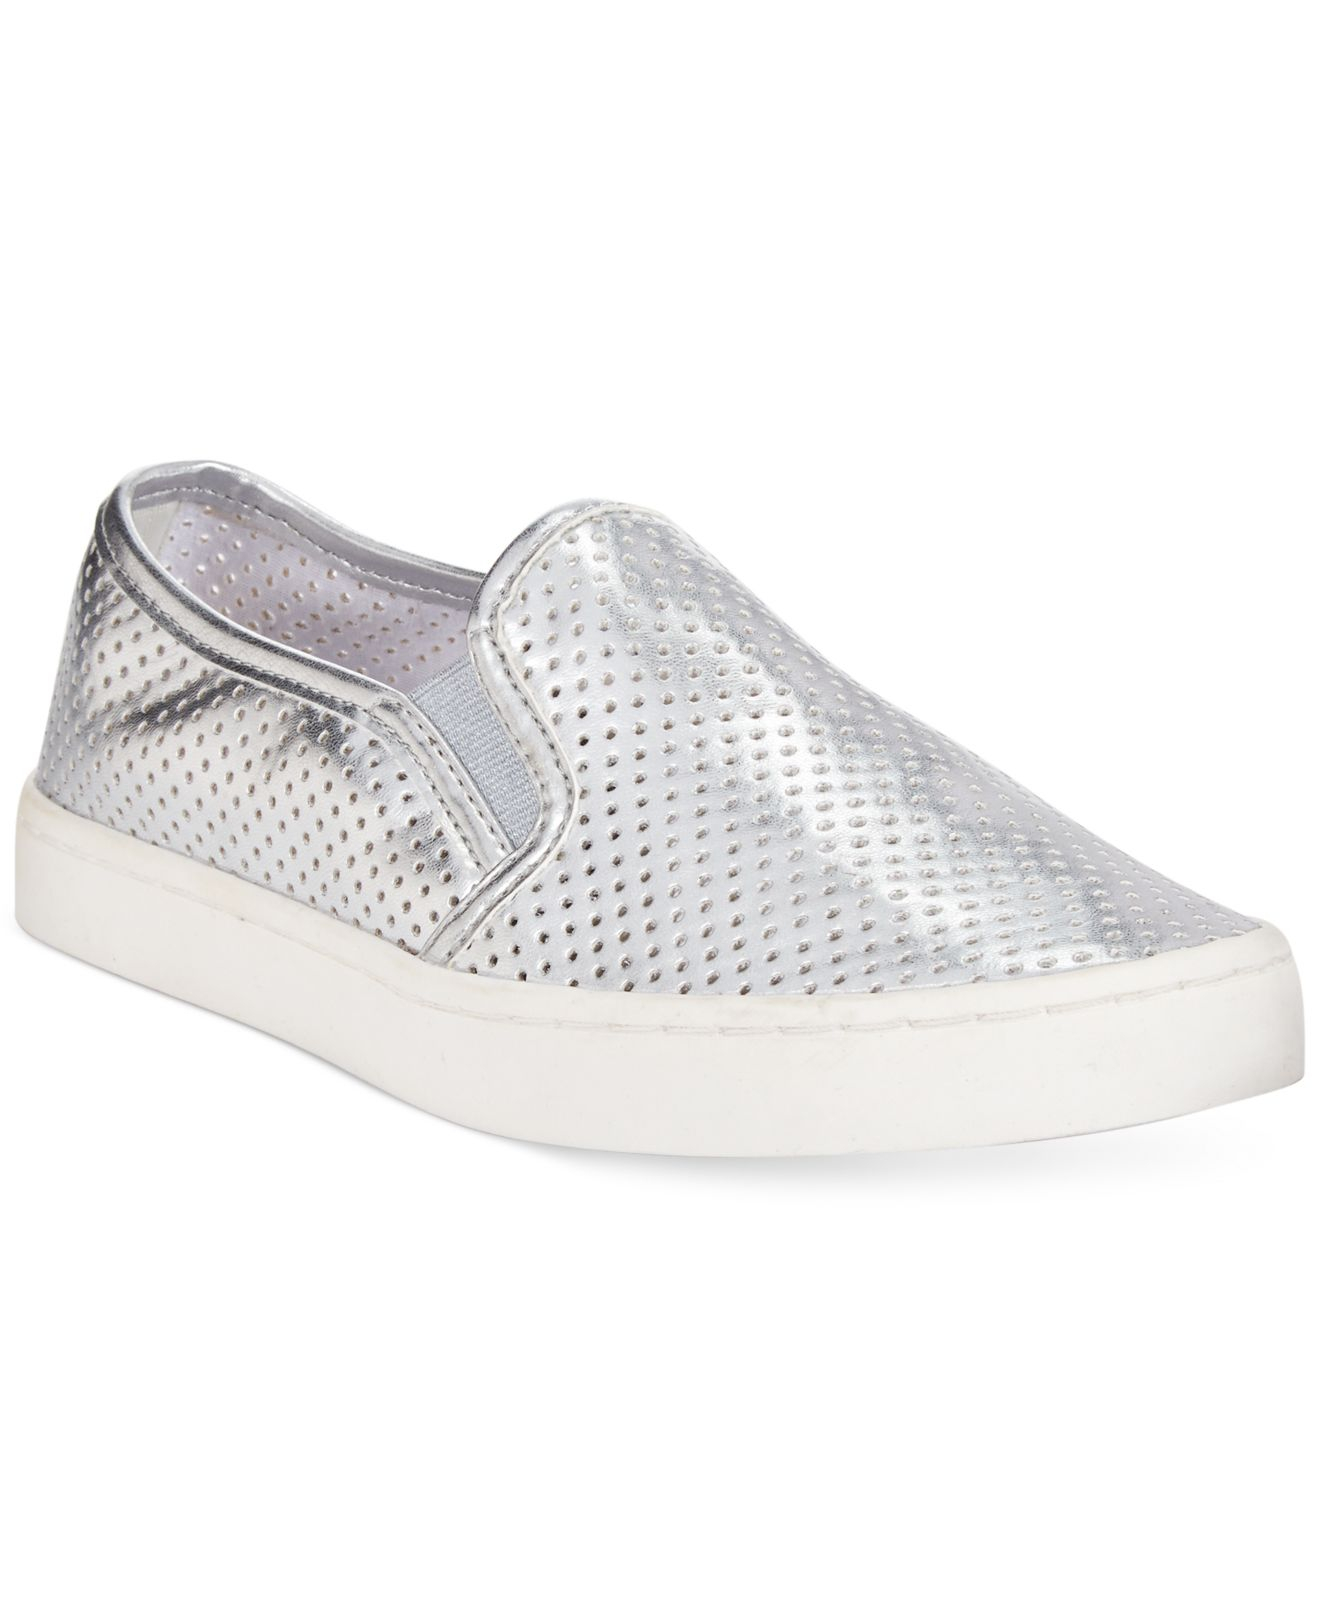 f08fad07d2b566 Lyst - Report Arvon Perforated Slip On Sneakers in Metallic